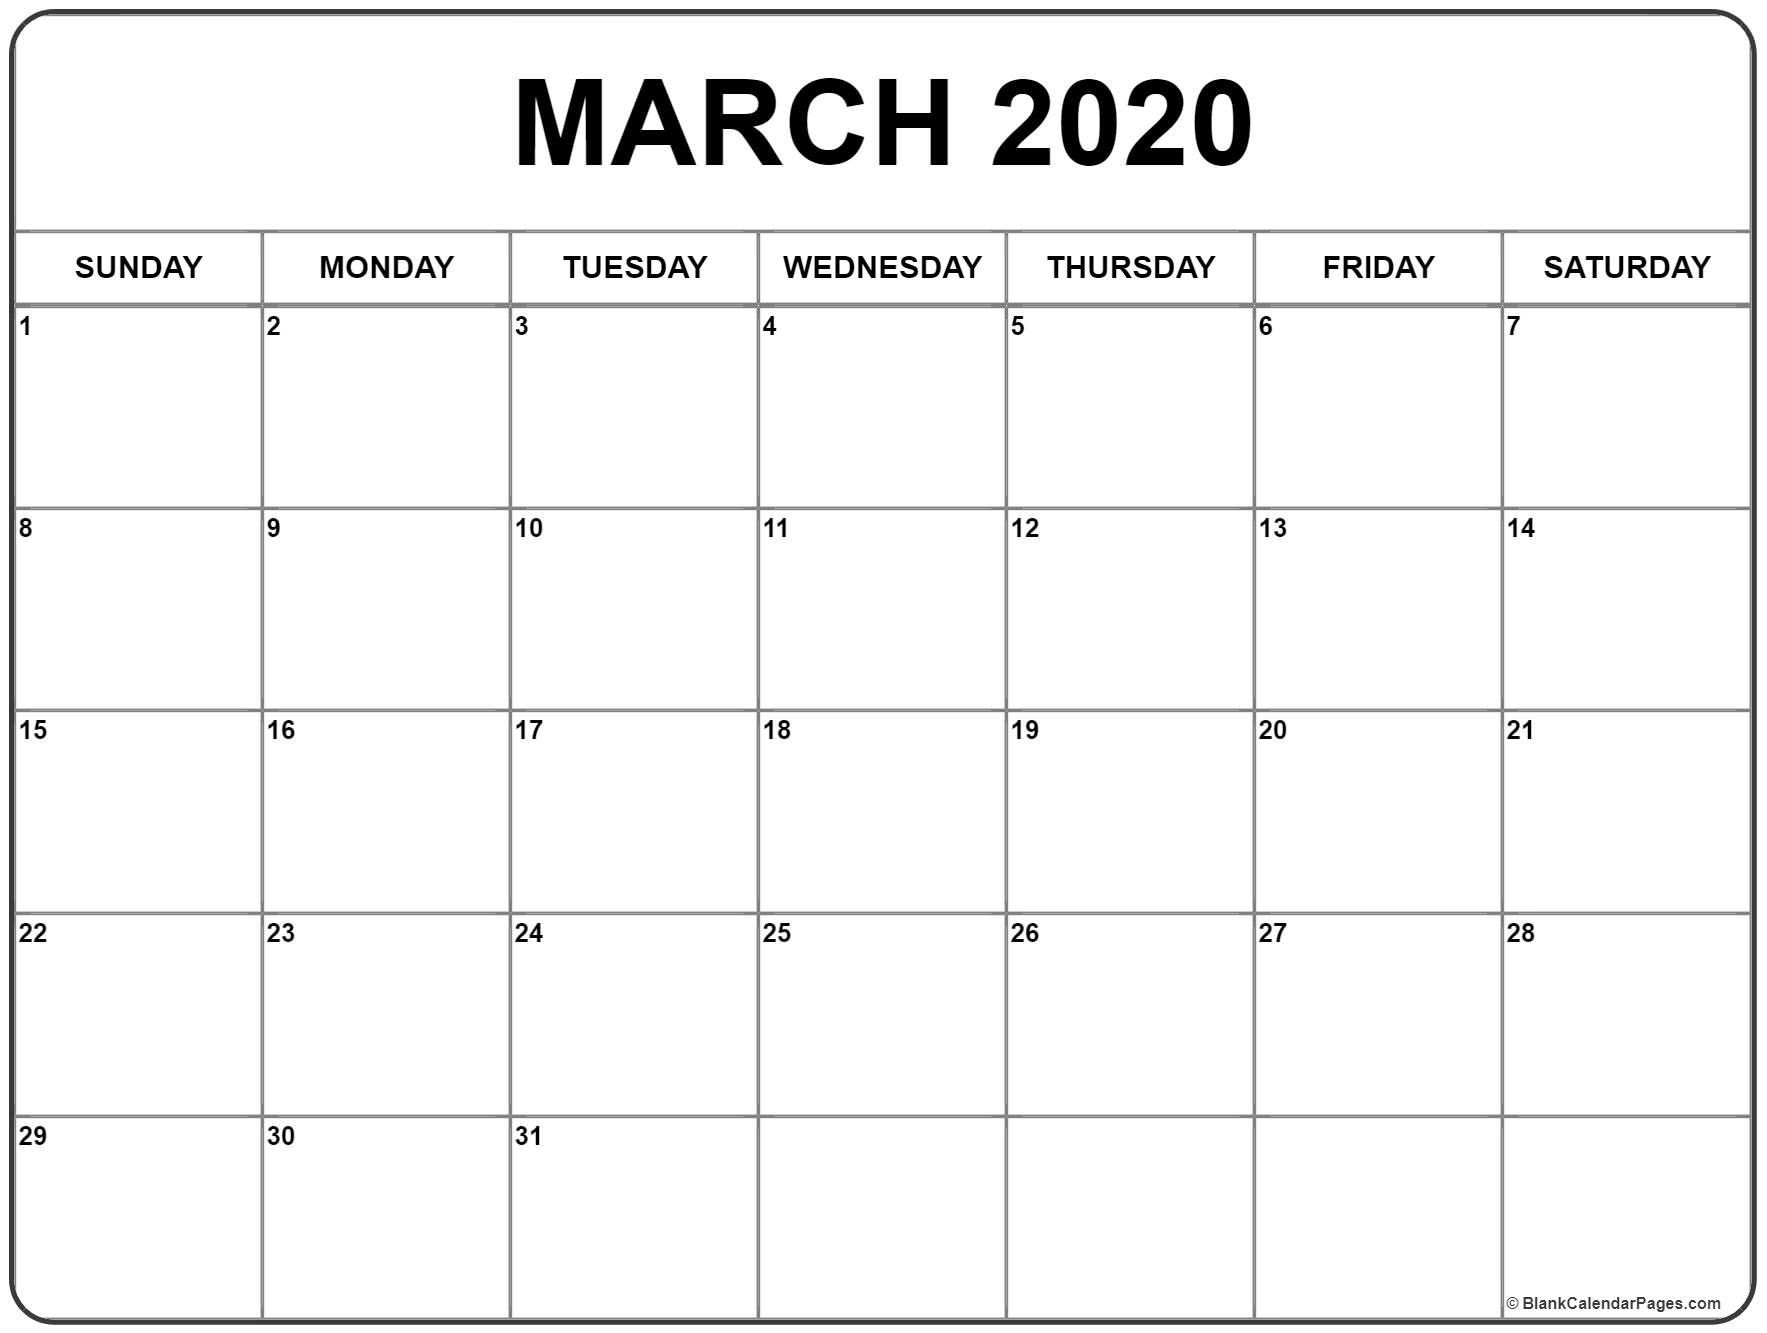 March 2020 Calendar | Free Printable Monthly Calendars-2020 Calendar January February March